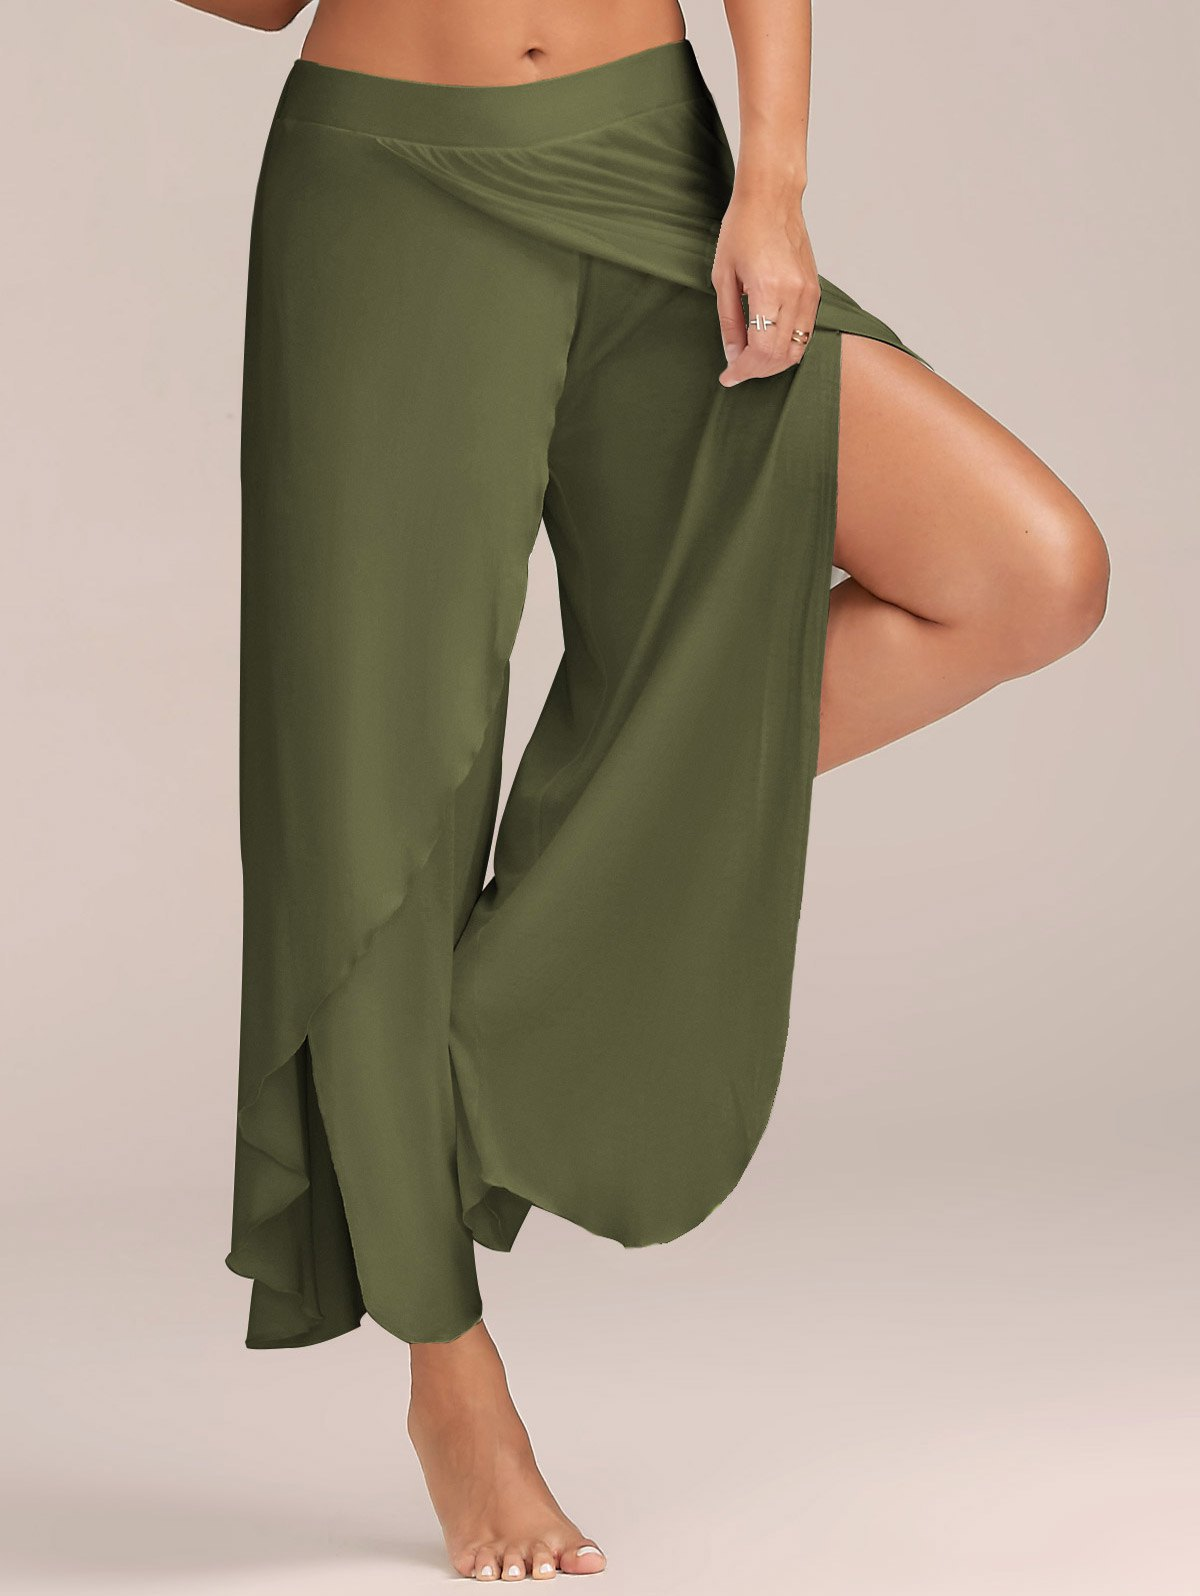 1 Piece Women High Split Trousers Female Loose Yoga Sport Wide Leg Pants army green